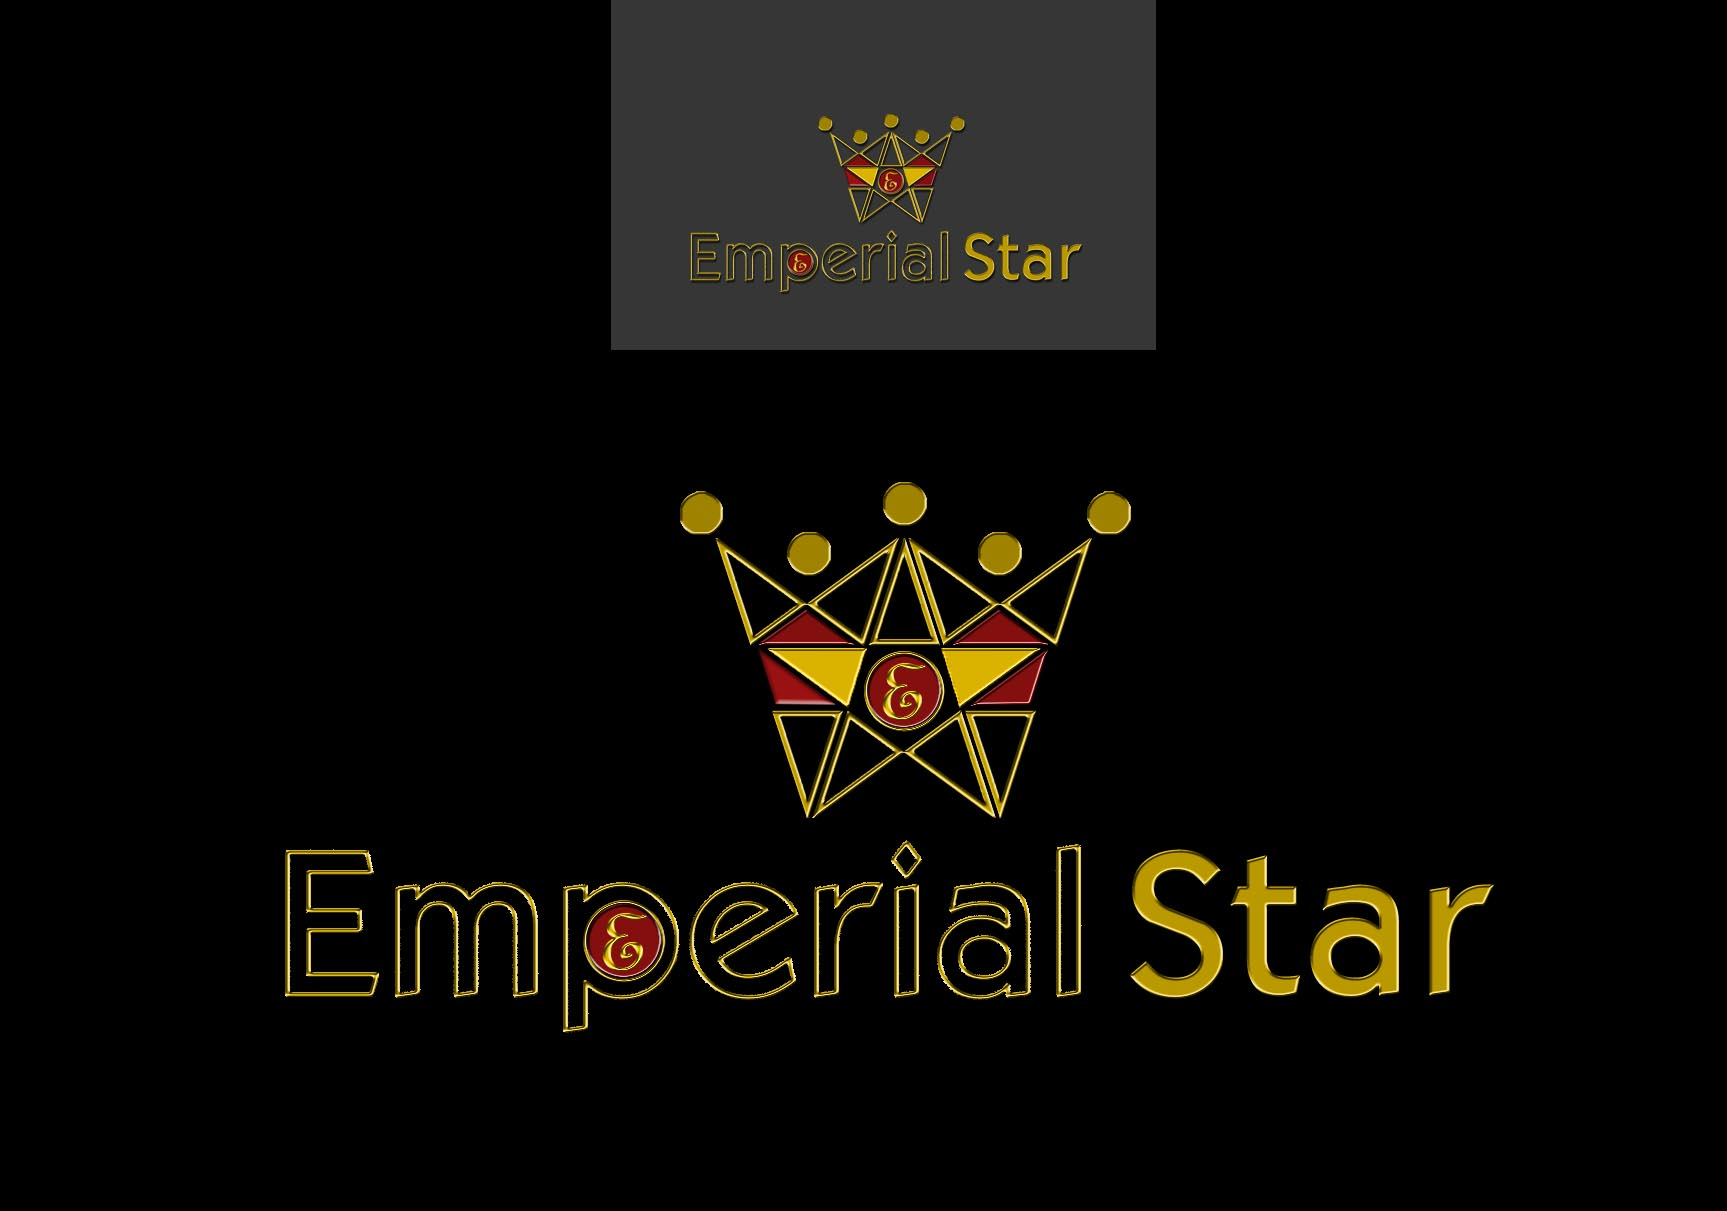 Logo Design by Cesar III Sotto - Entry No. 95 in the Logo Design Contest Emperial Star Logo Design.